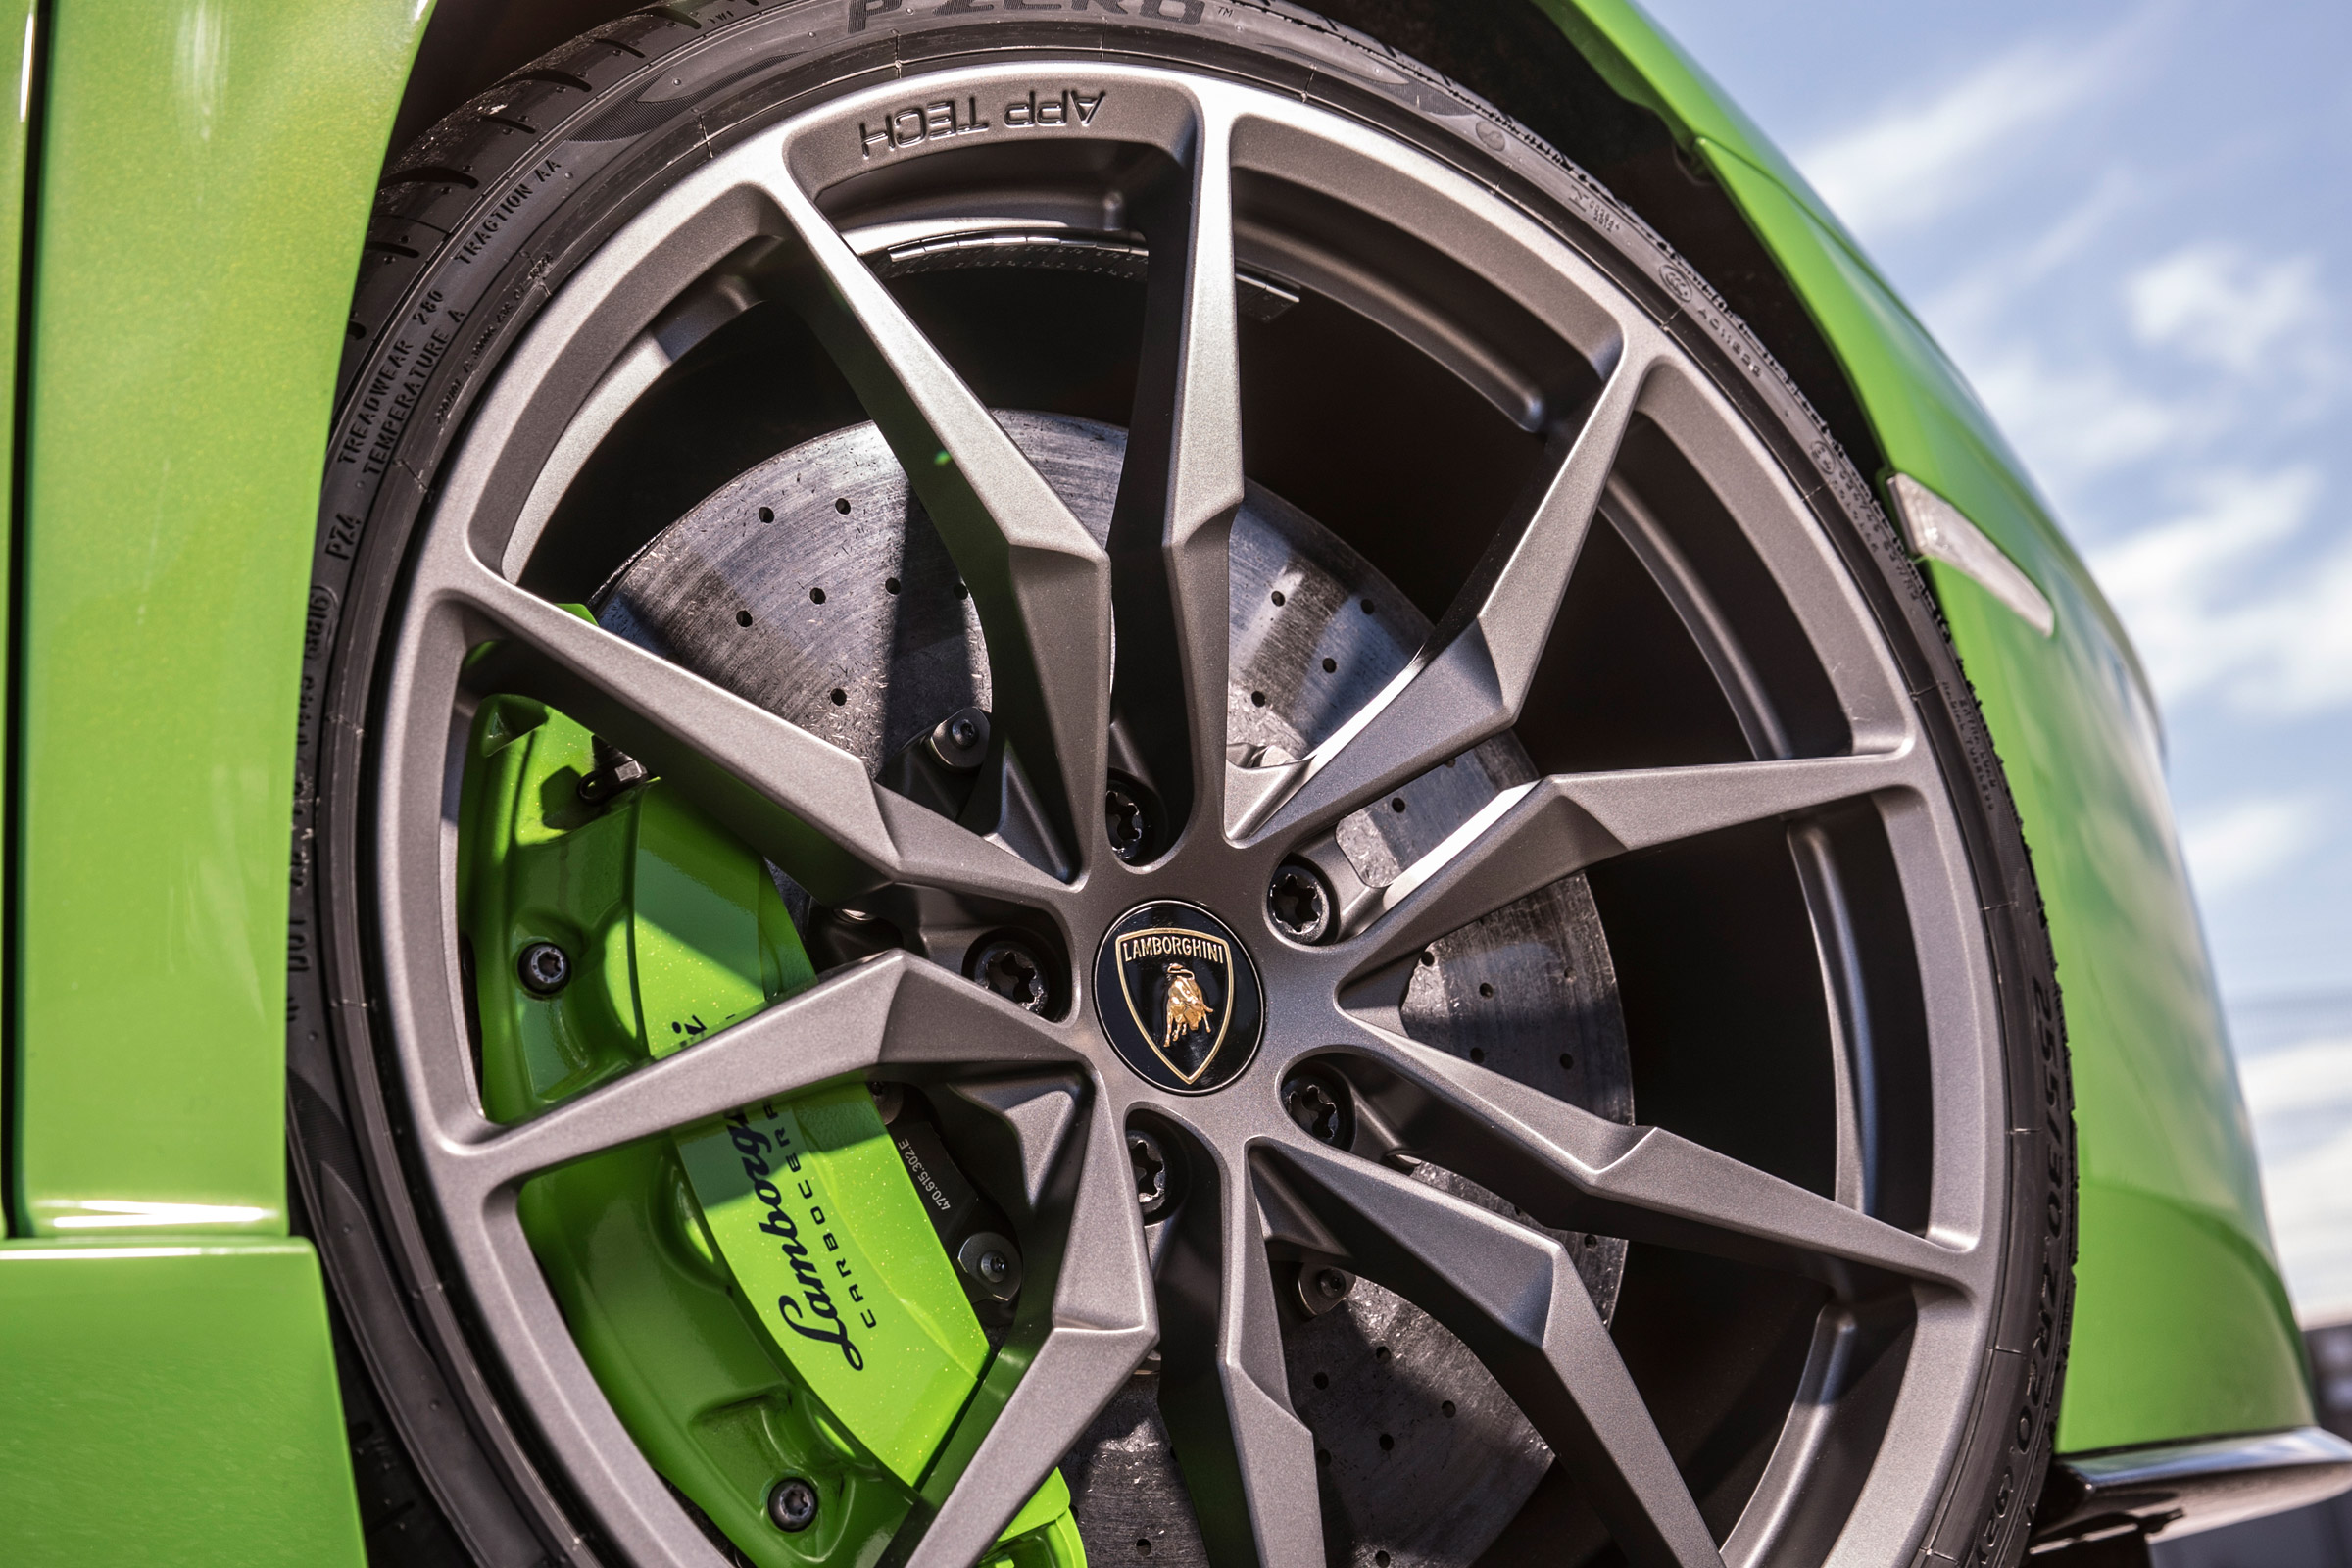 2017 Lamborghini Aventador S Exterior View Wheel (Photo 7 of 20)